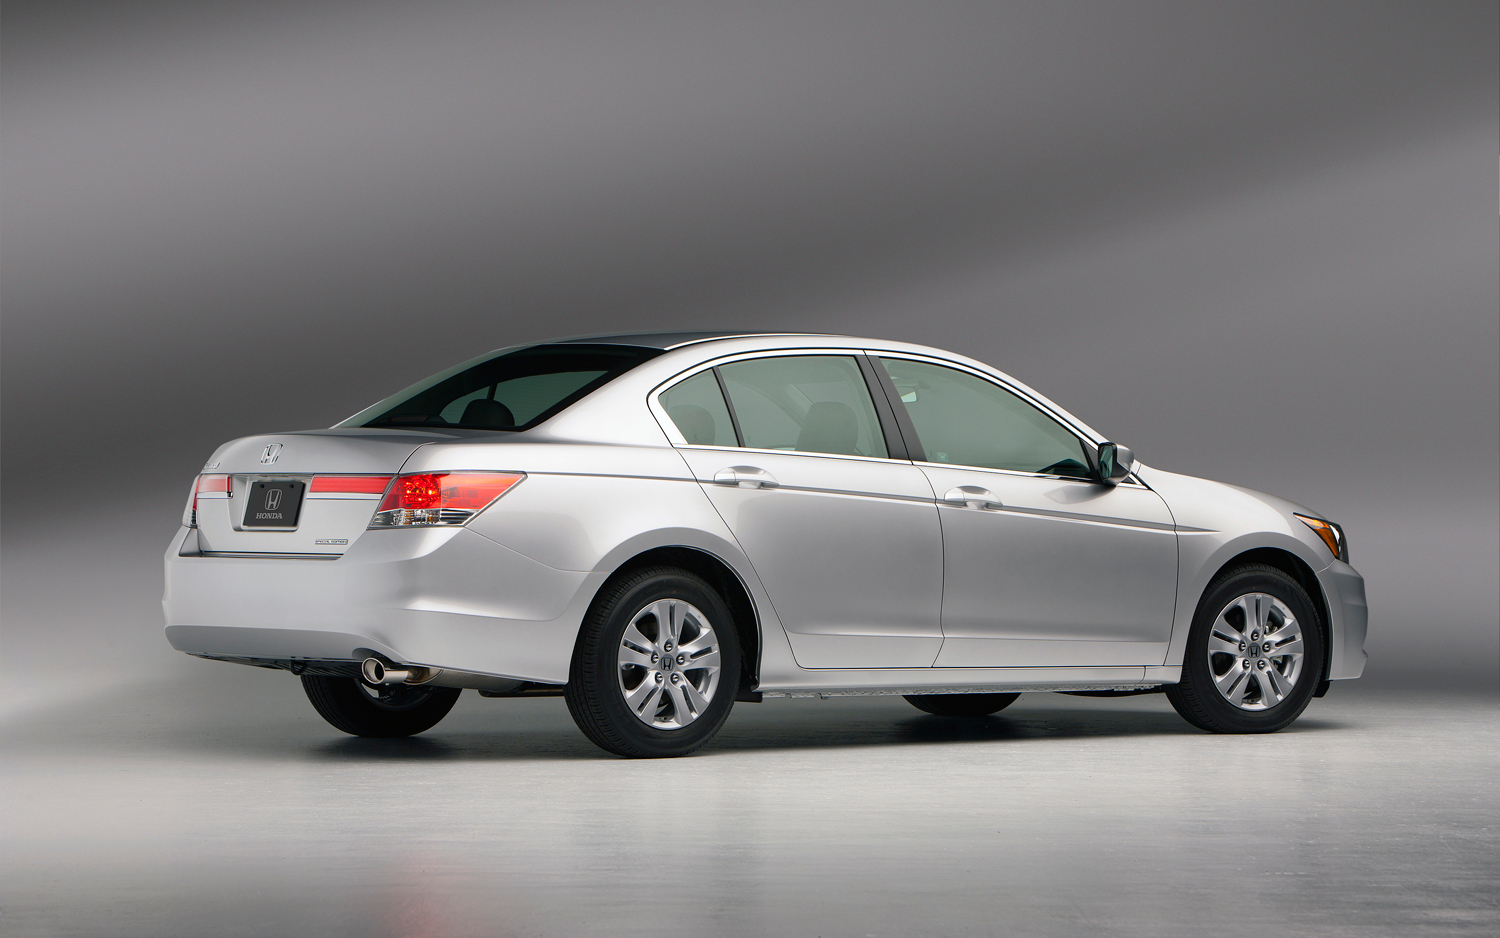 honda accord viii sedan 2014 images #11